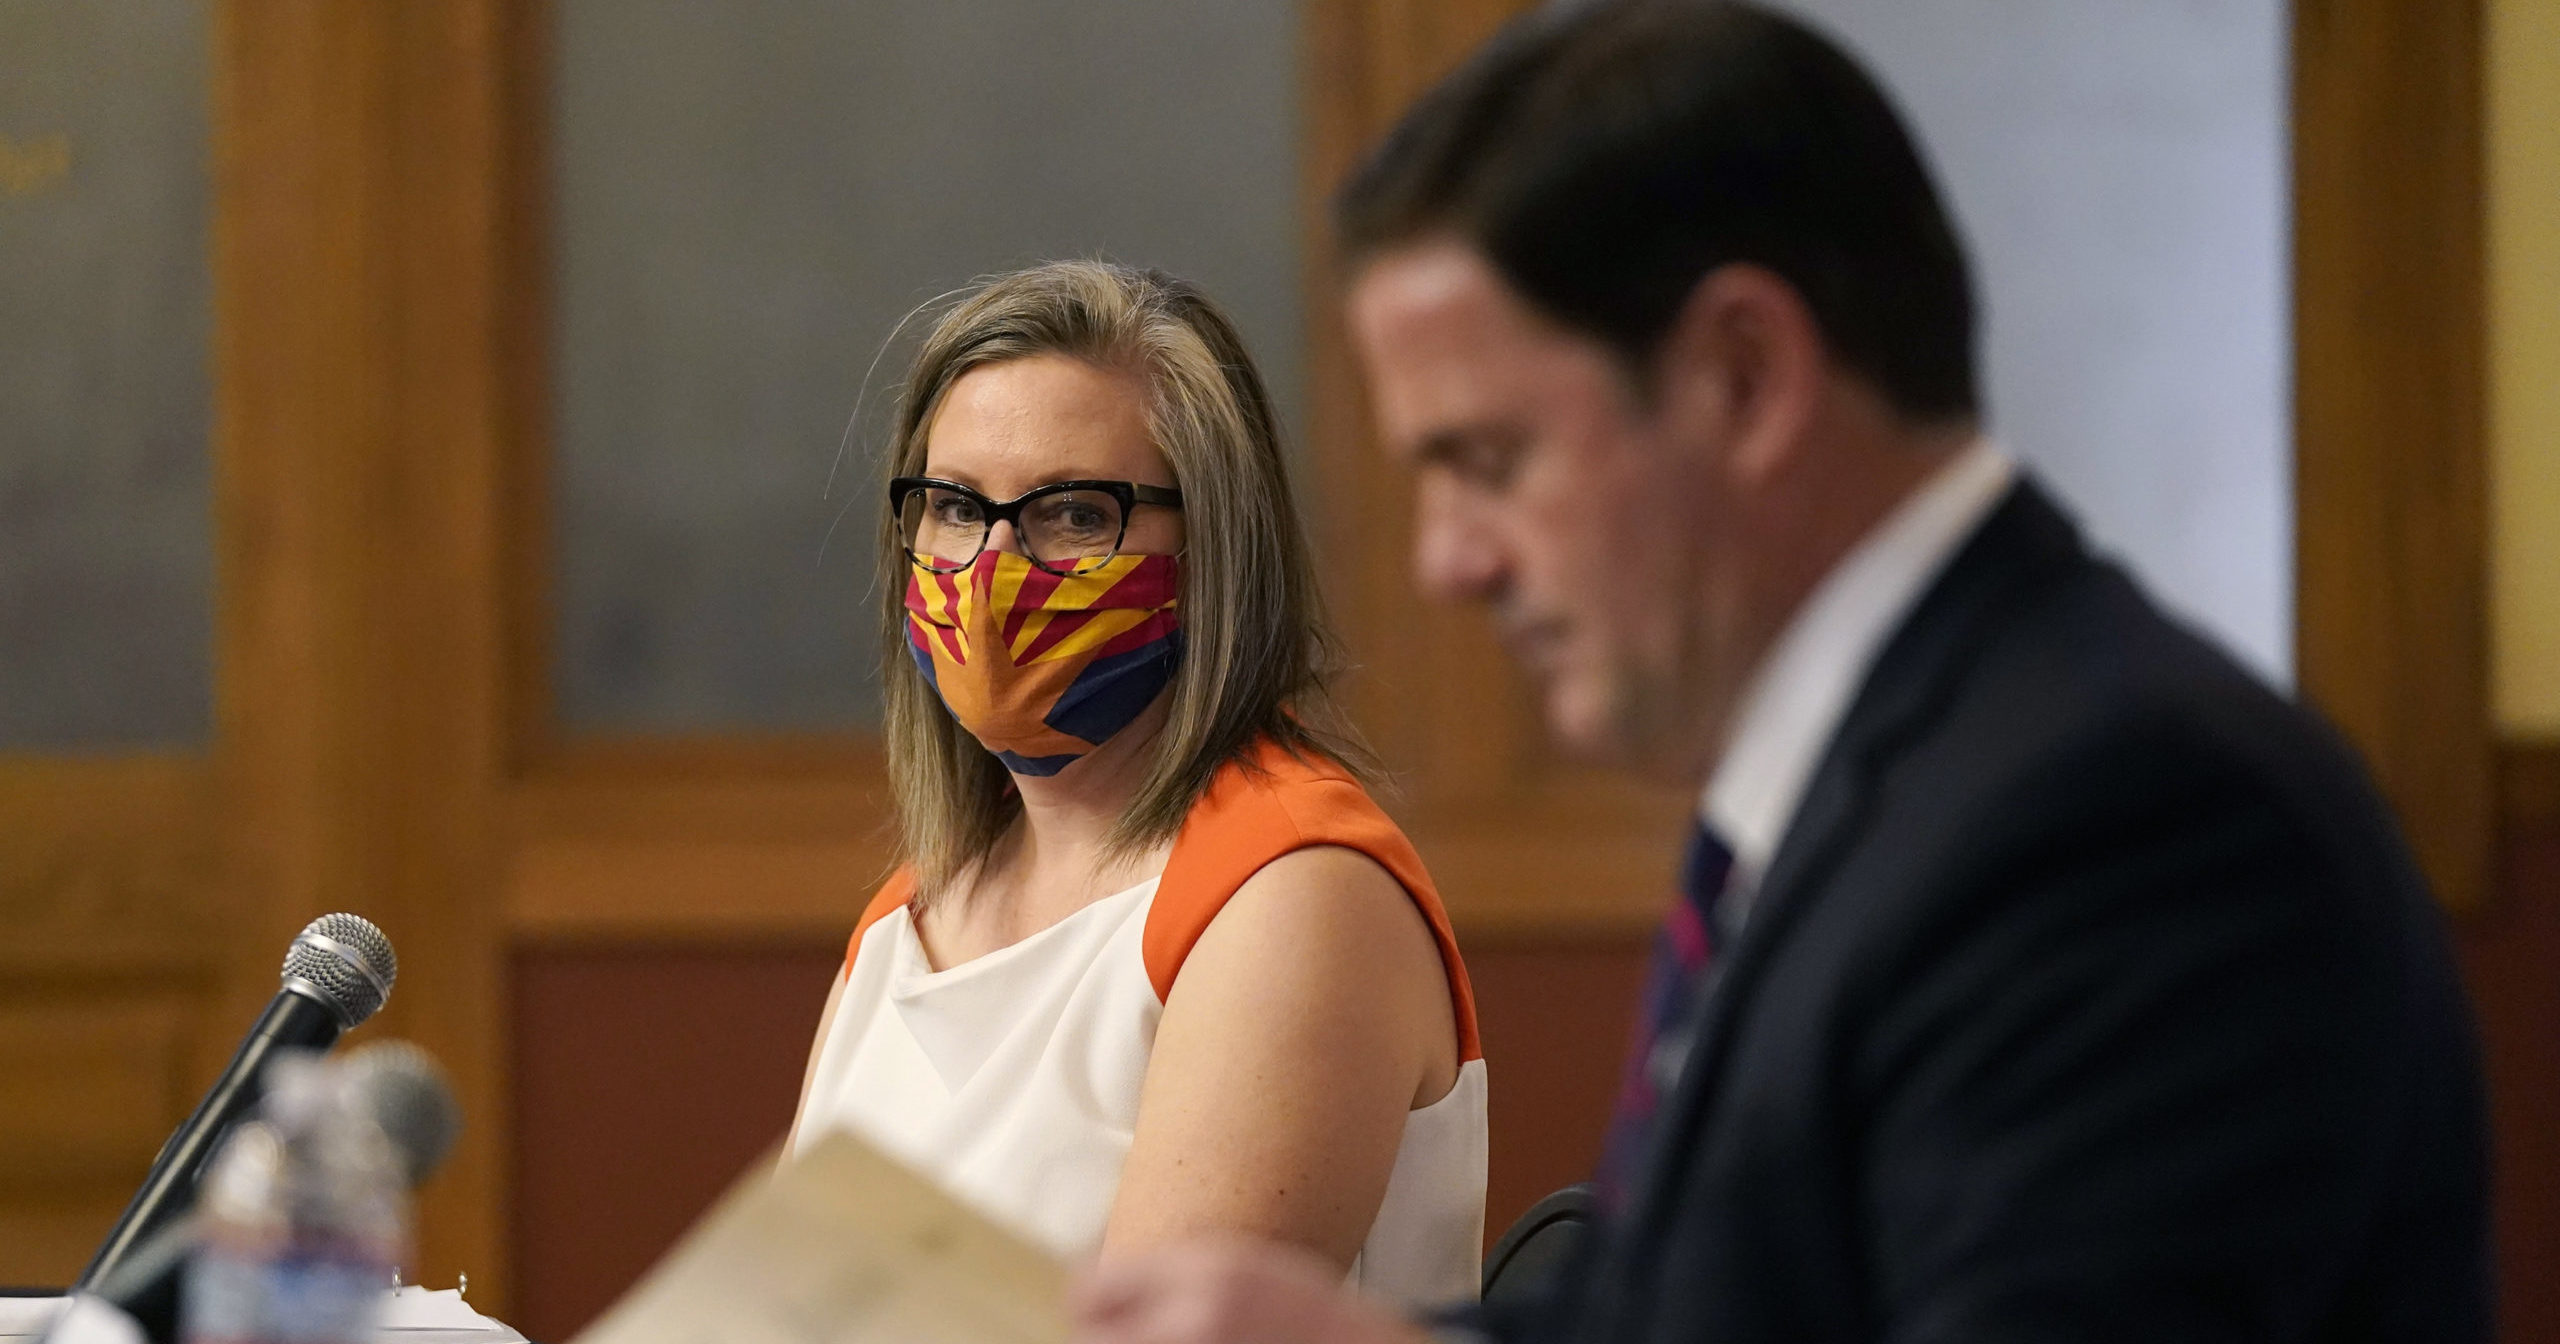 Arizona Secretary of State Katie Hobbs watches as Arizona Gov. Doug Ducey signs election documents to certify the election results at the Arizona Capitol on Nov. 30, 2020, in Phoenix.